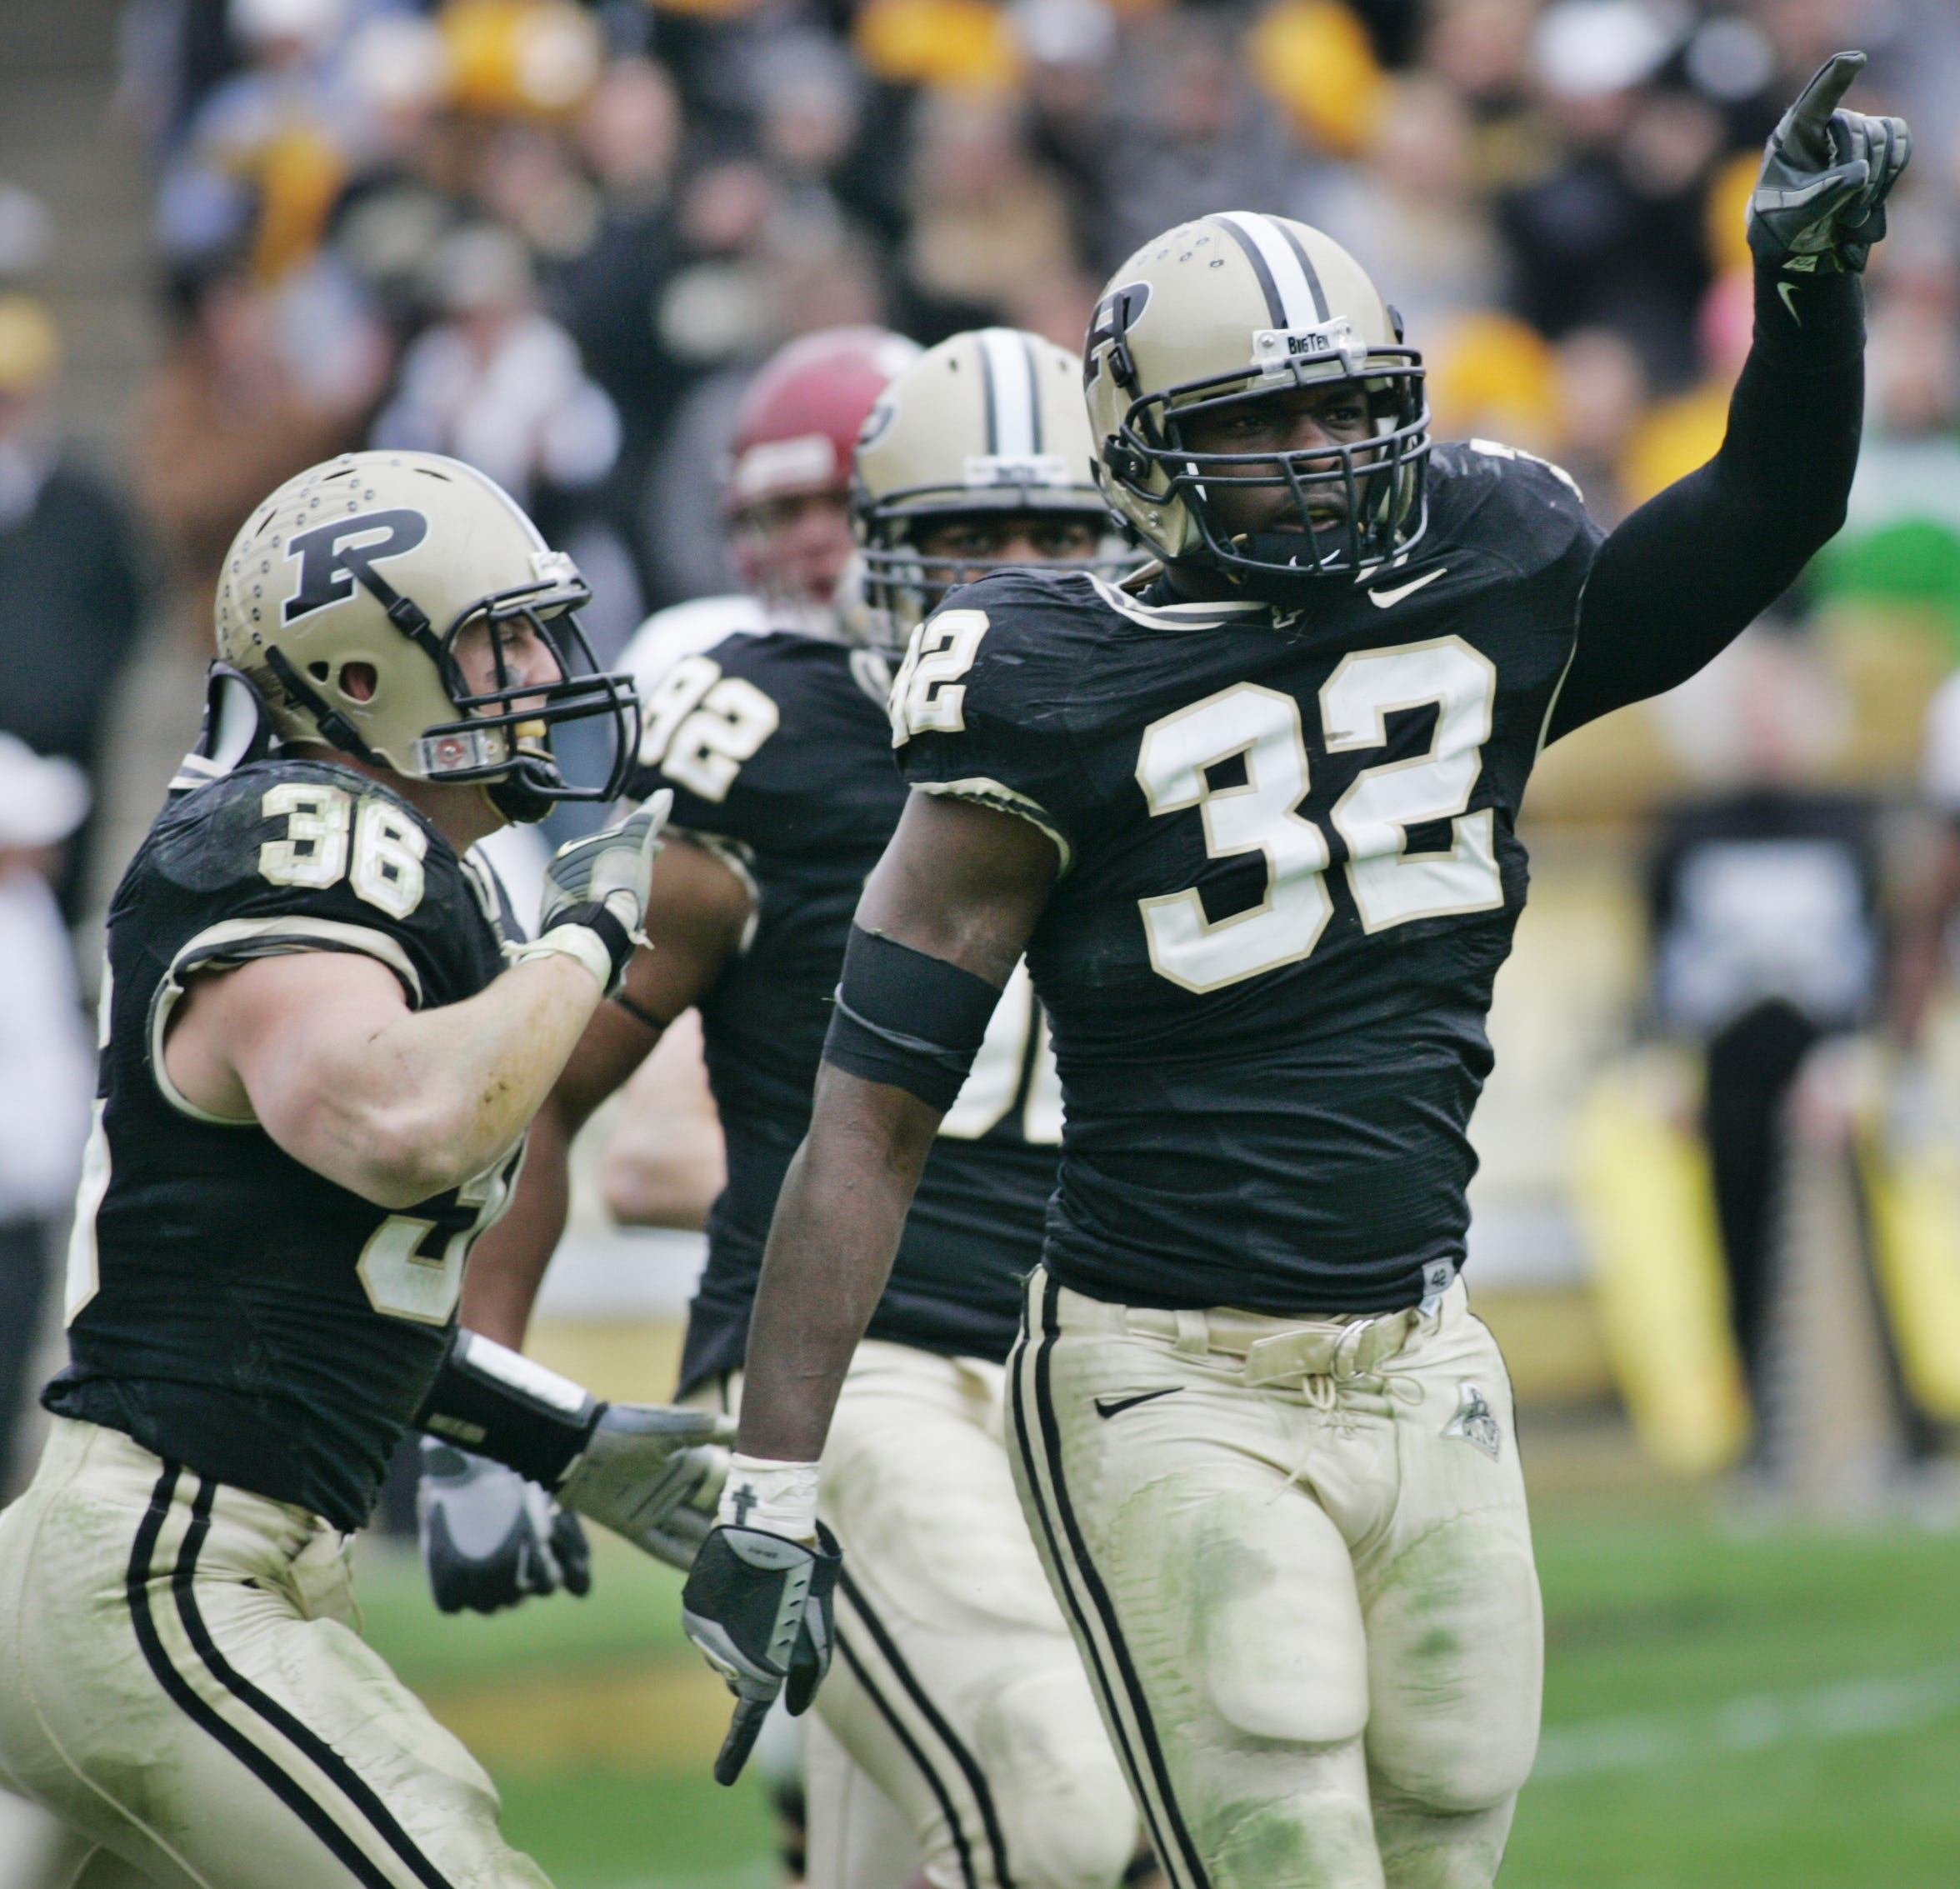 Cliff Avril (32) celebrates stopping Indiana quarterback Kellen Lewis as he tried to run for a two point conversion at 9:29 of the fourth quarter at Ross-Ade Stadium Saturday, November 18, 2006. Purdue defeated Indiana 28-19 to retain the Old Oaken Bucket.